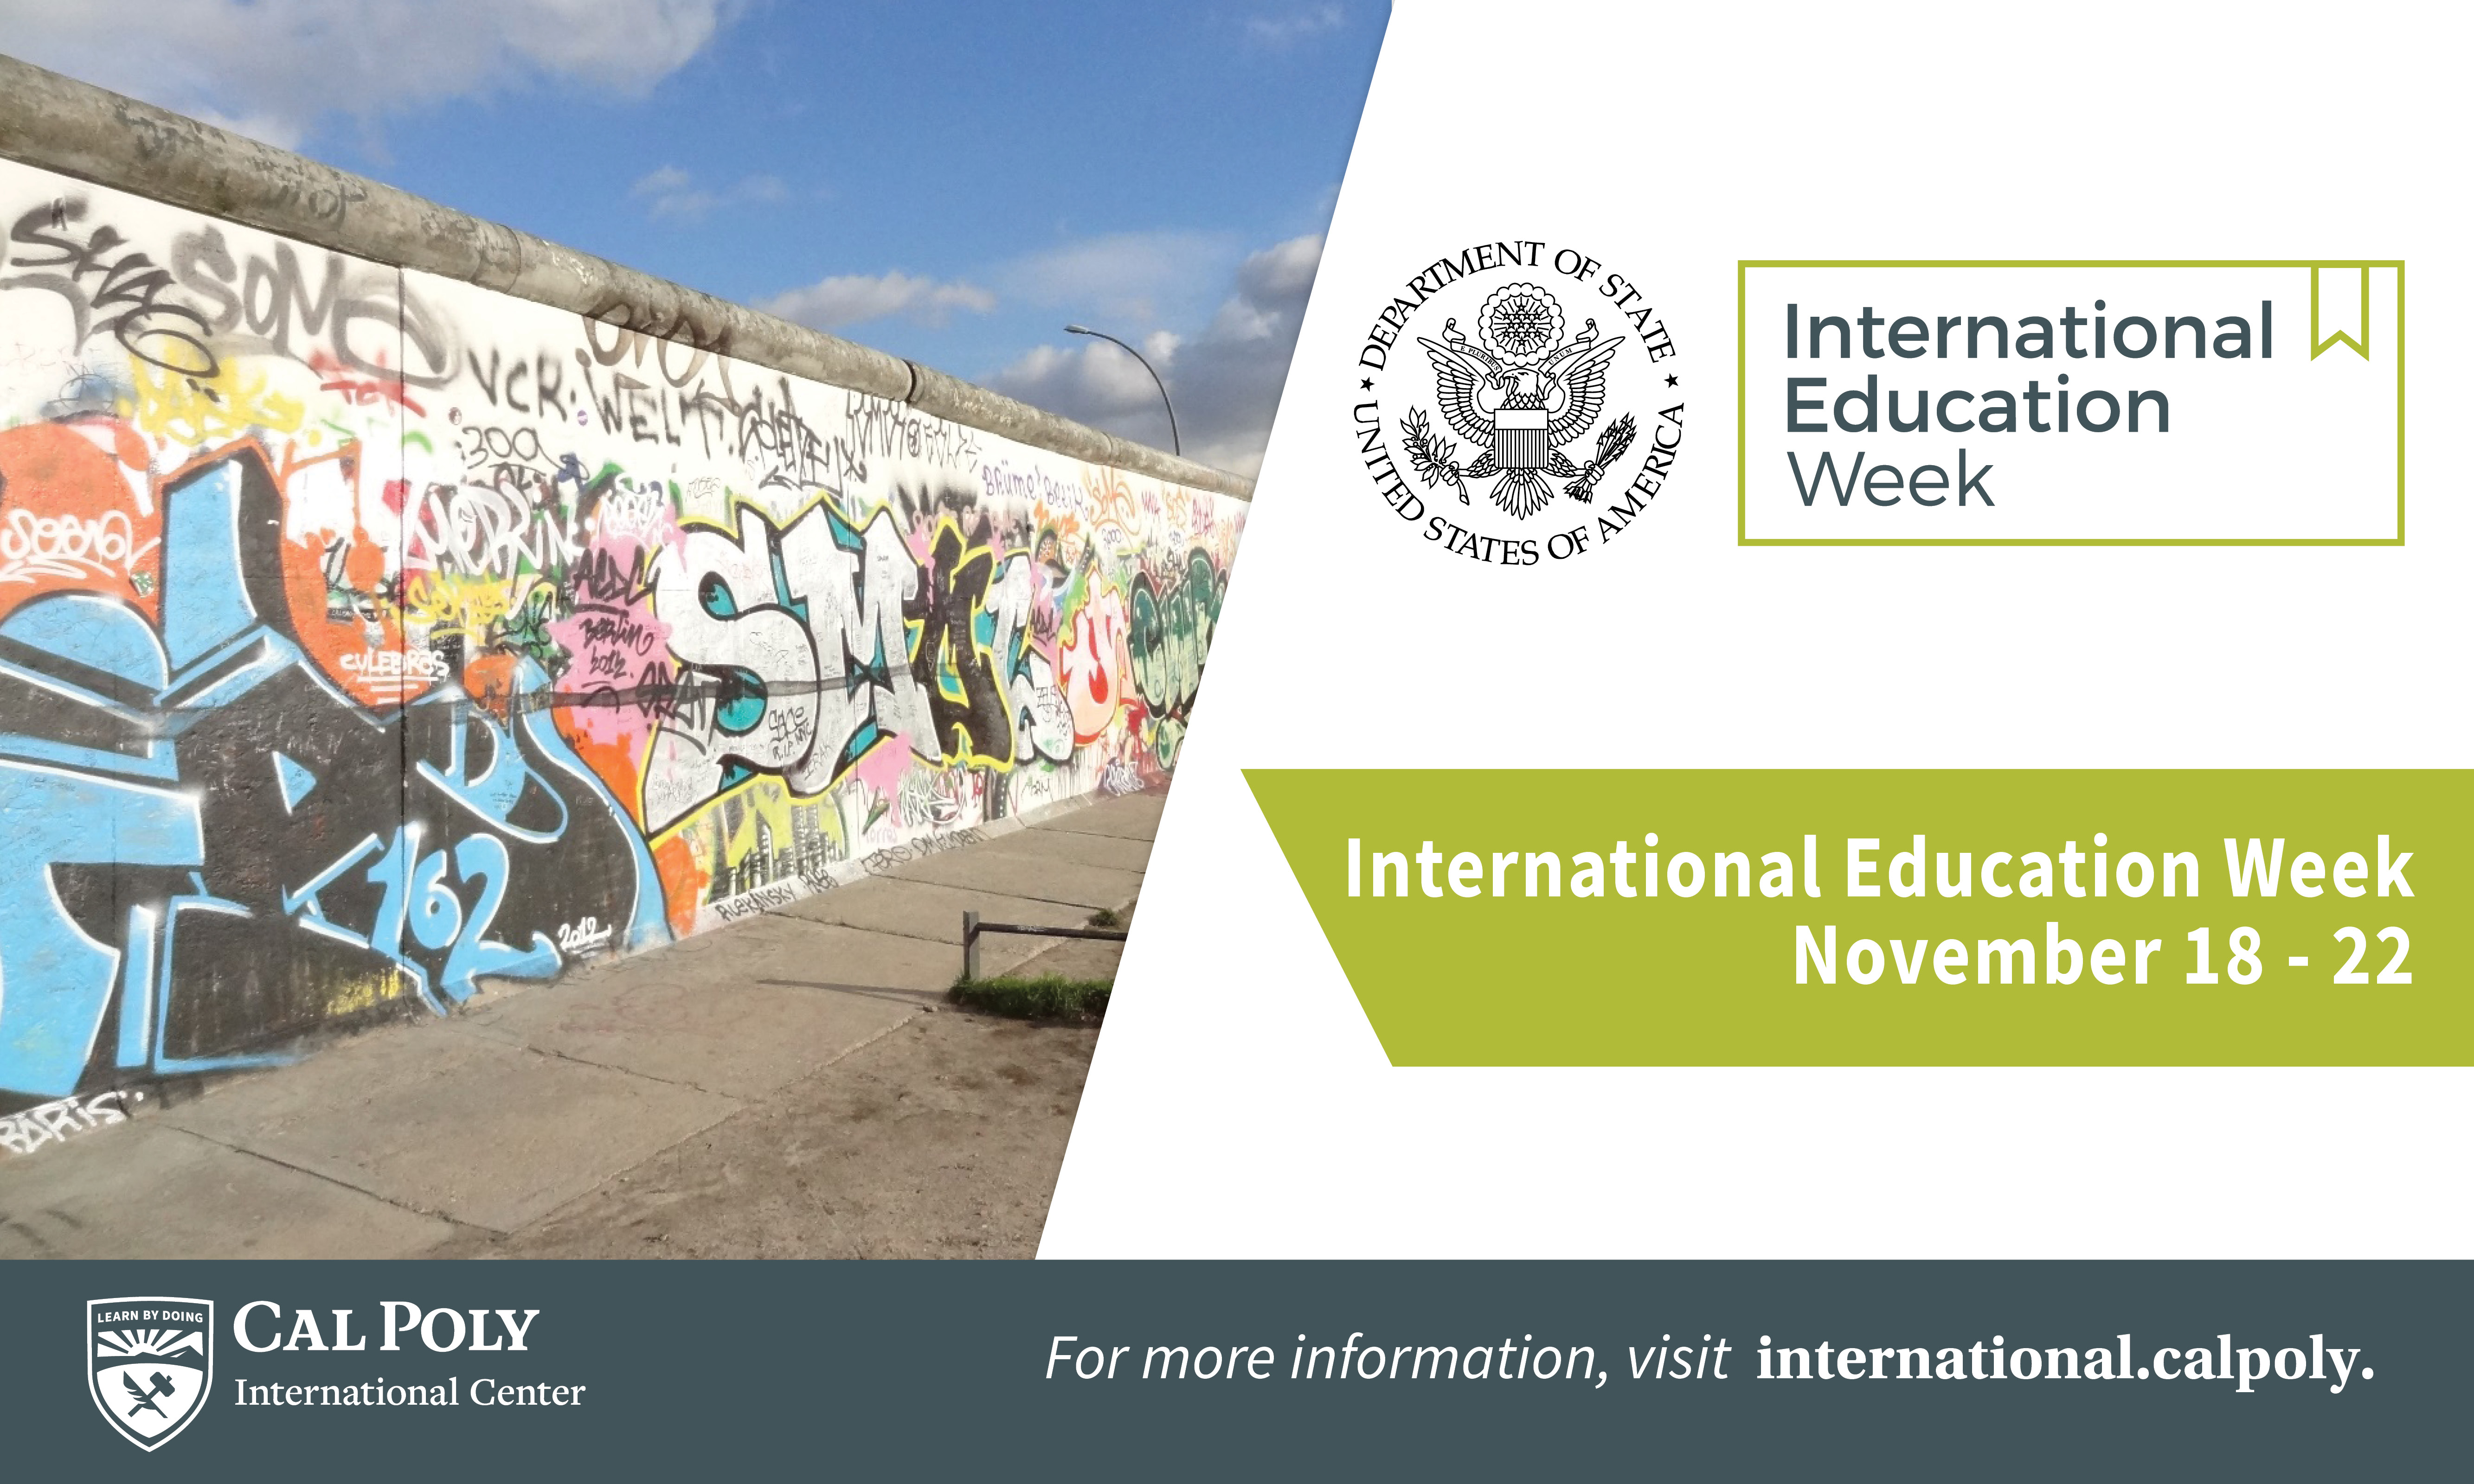 Banner for International Education Week.